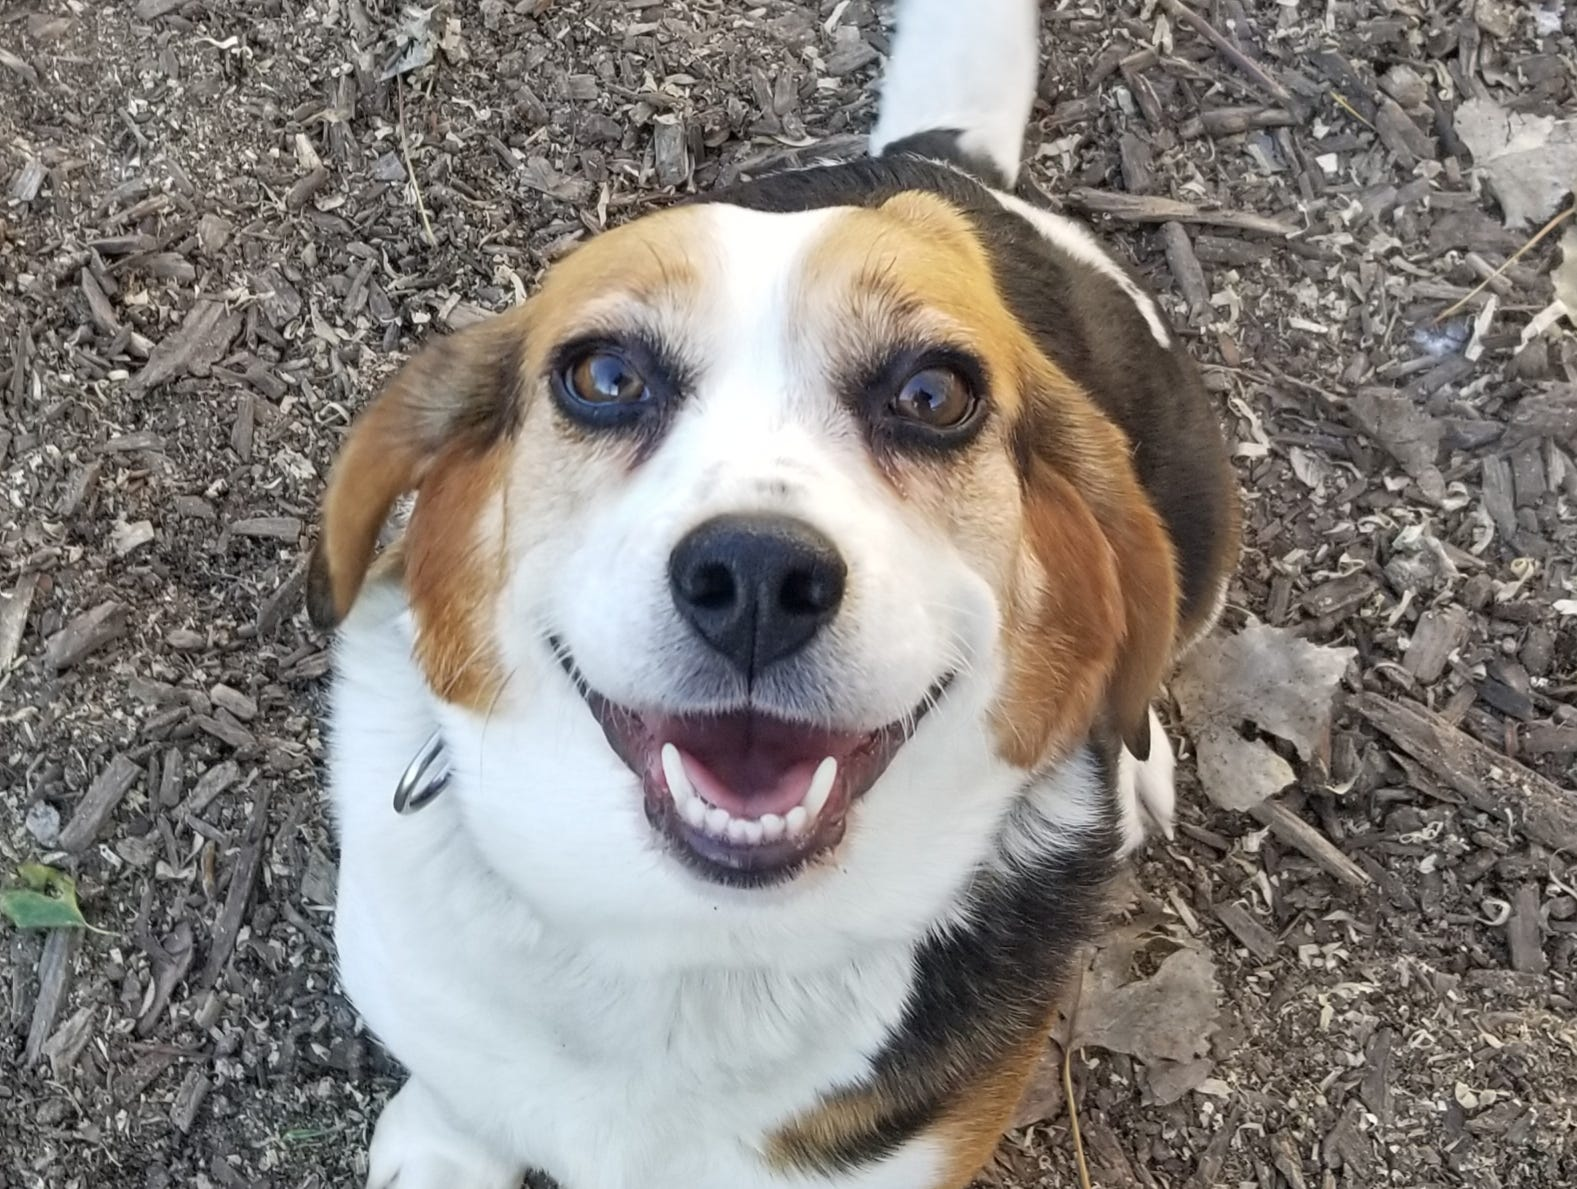 Goldie, a 5-year-old beagle mix, is sweet, active, happy, fun and curious. She is spayed.